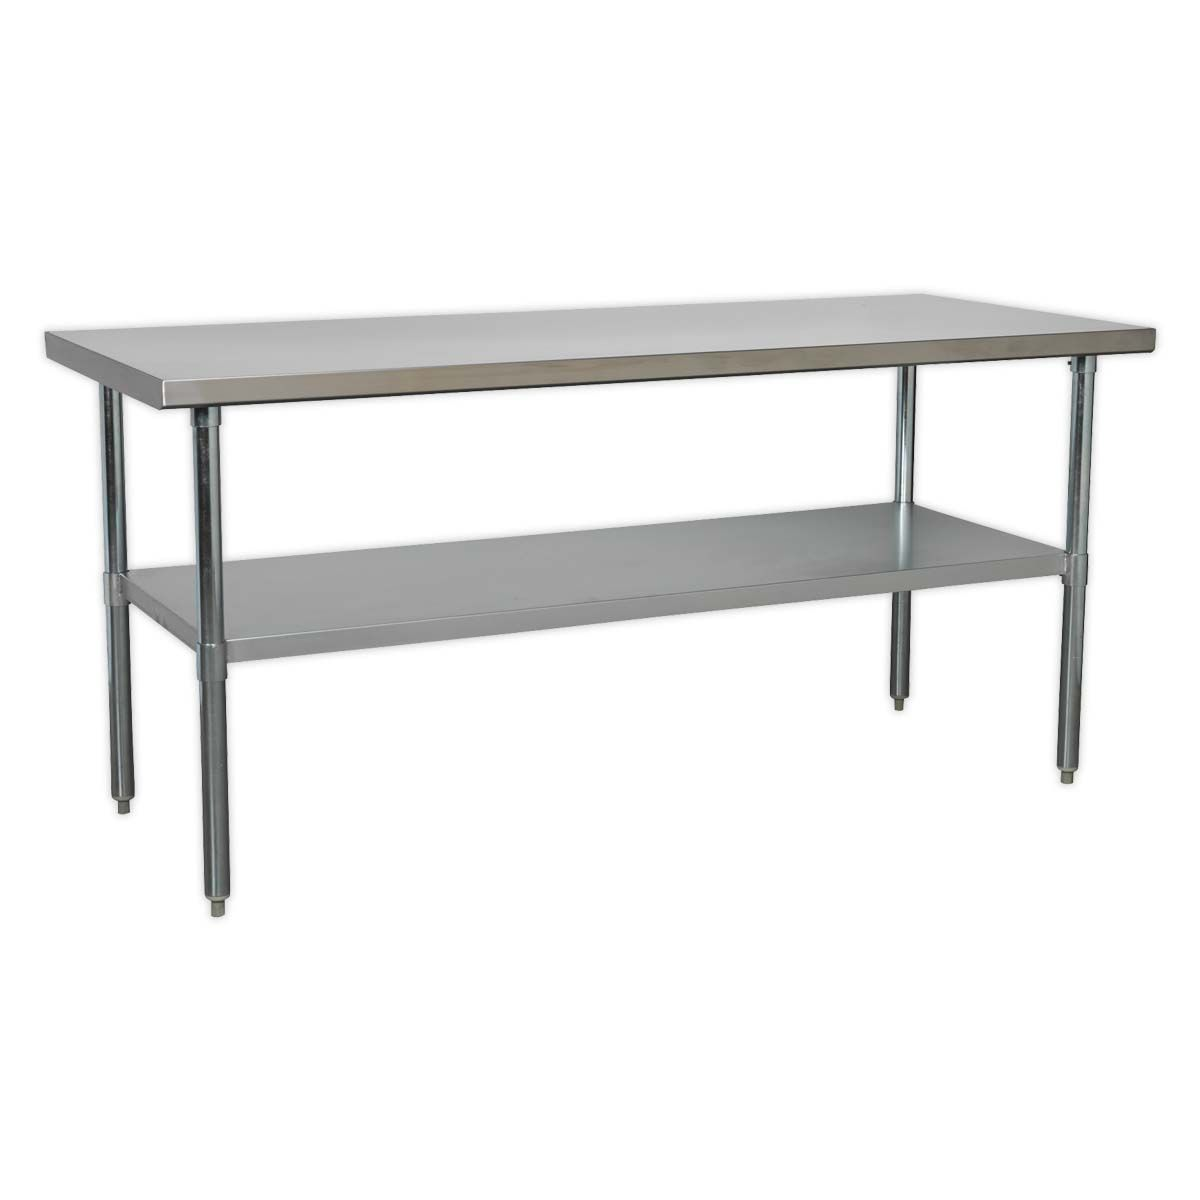 Sealey Stainless Steel Workbench 1.8m